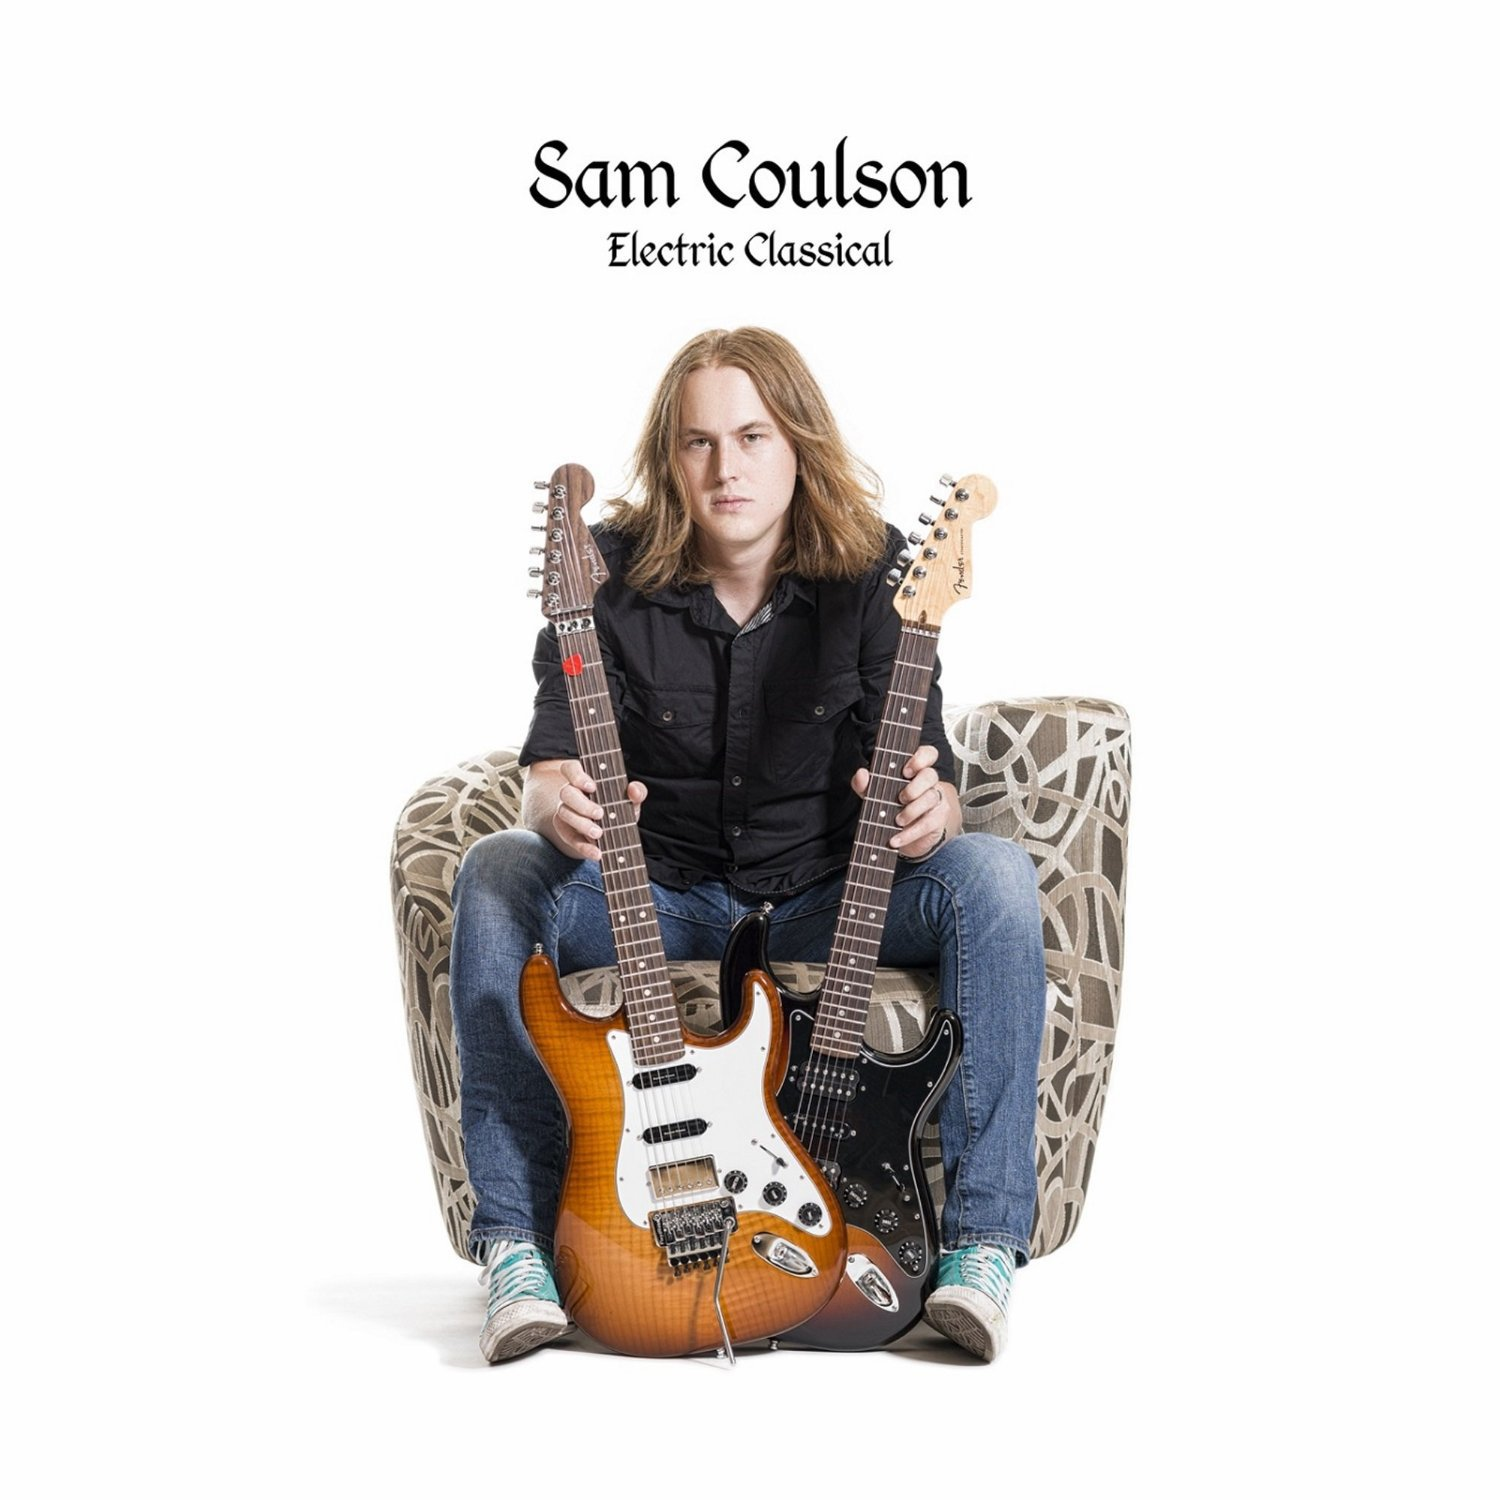 SAM COULSON Electric Classical